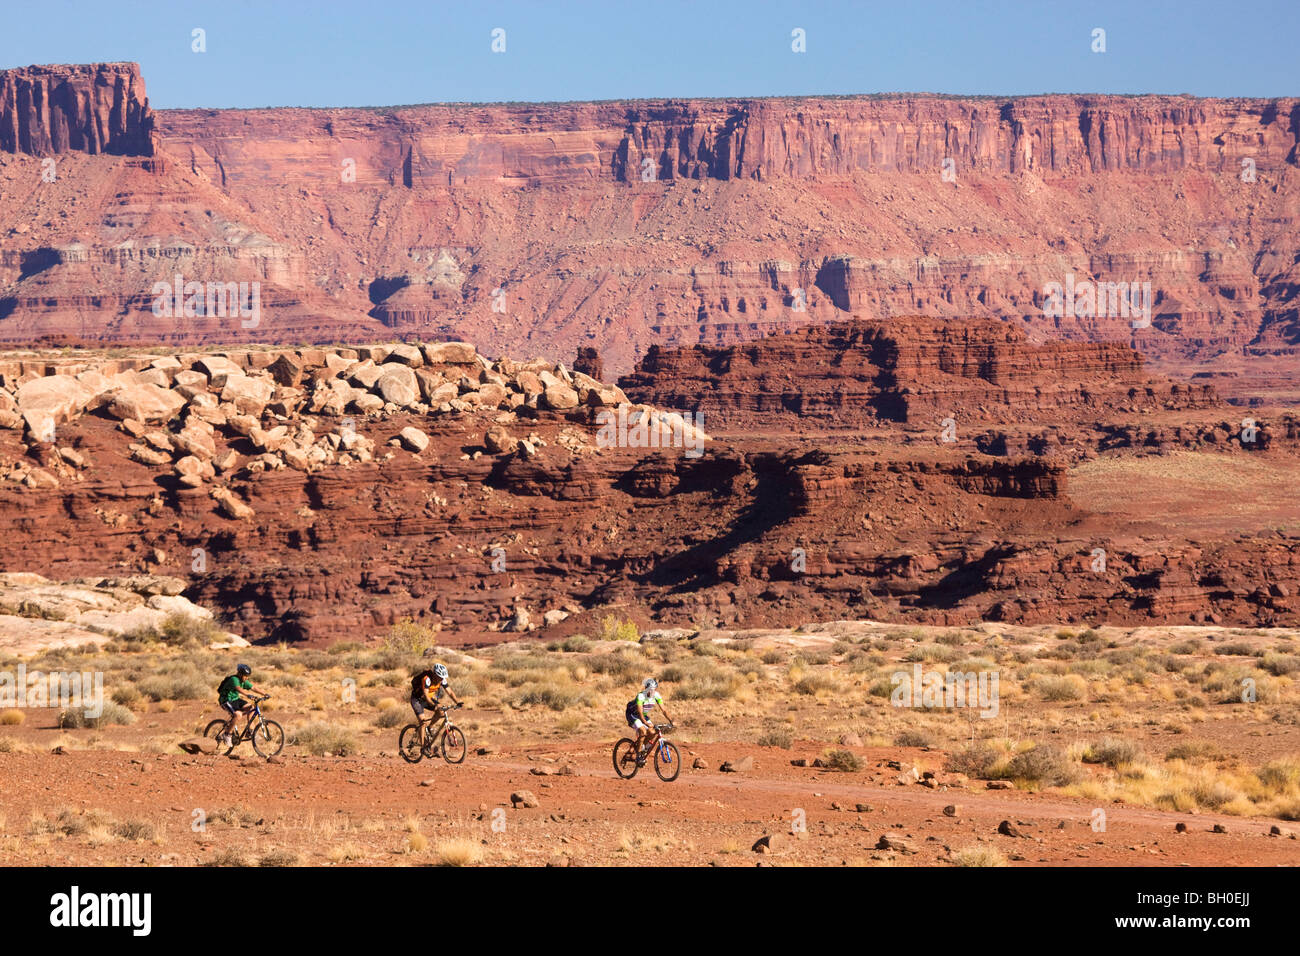 Mountain biking on the White Rim Trail, Island in the Sky District, Canyonlands National Park, near Moab, Utah. Stock Photo